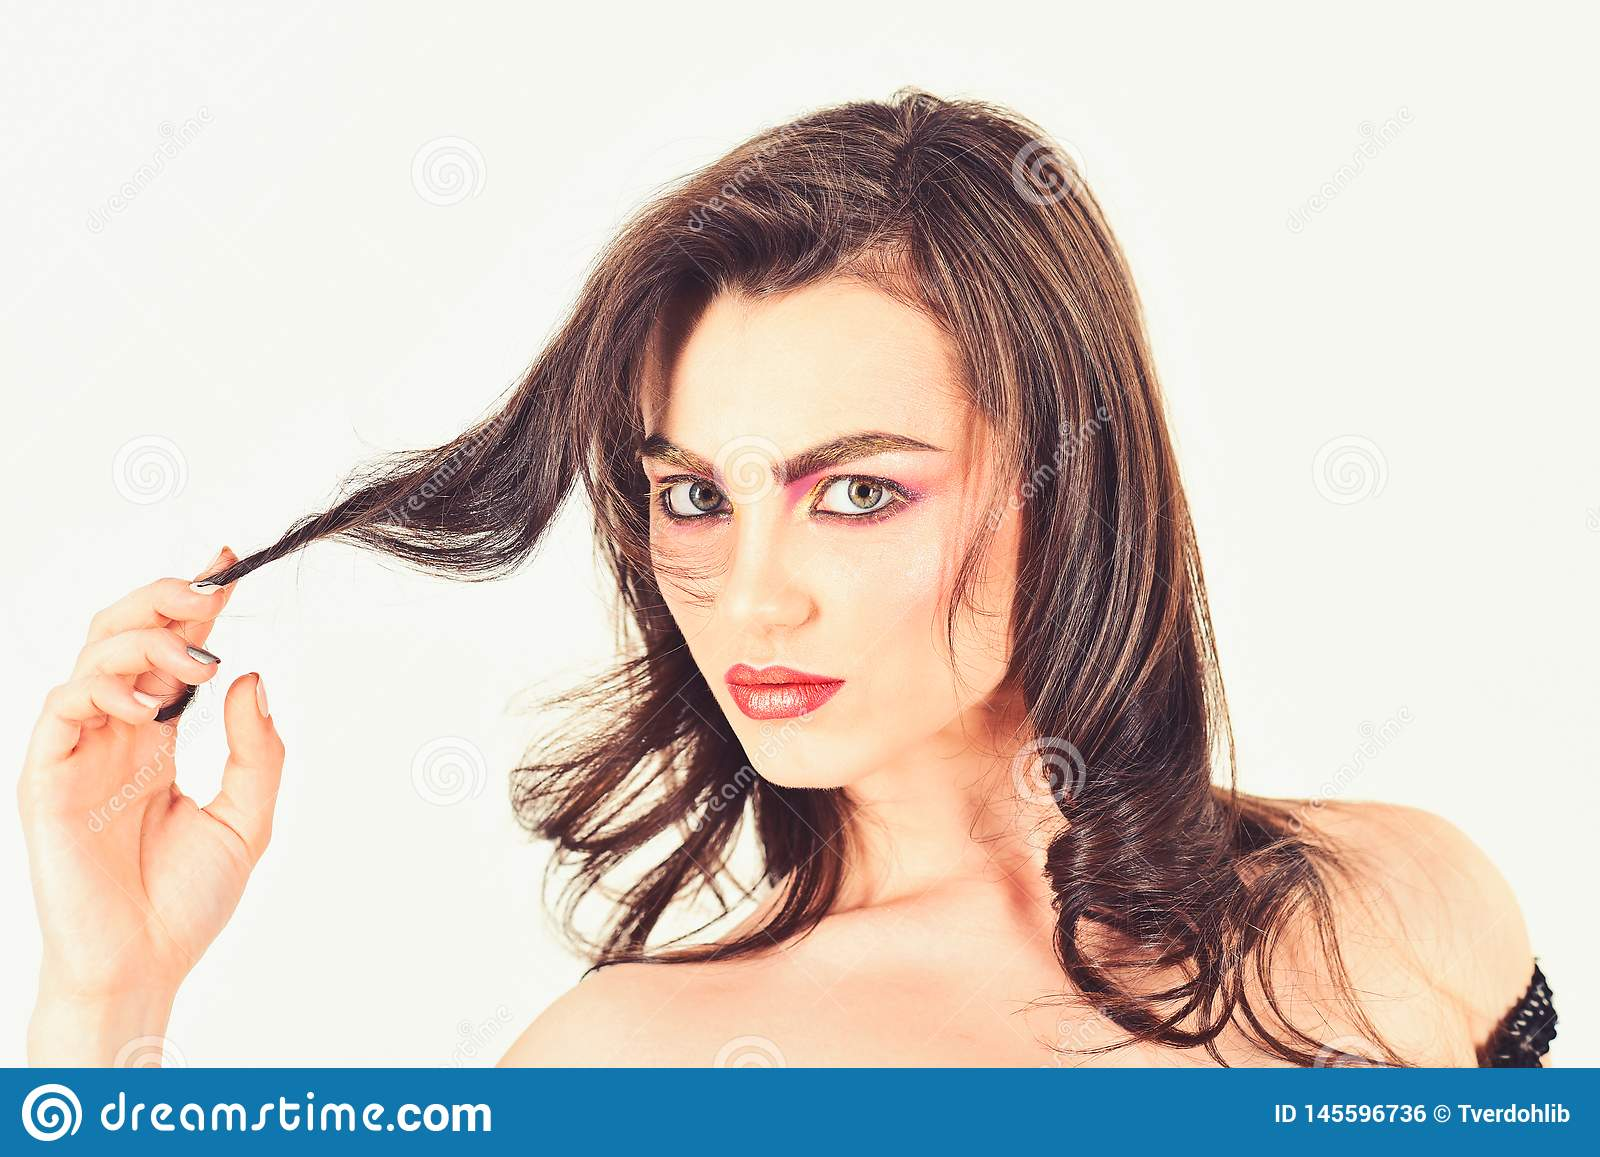 Making my hair look fabulous. Pretty woman wear long and wavy hair. woman with perfect makeup. Makeup model with